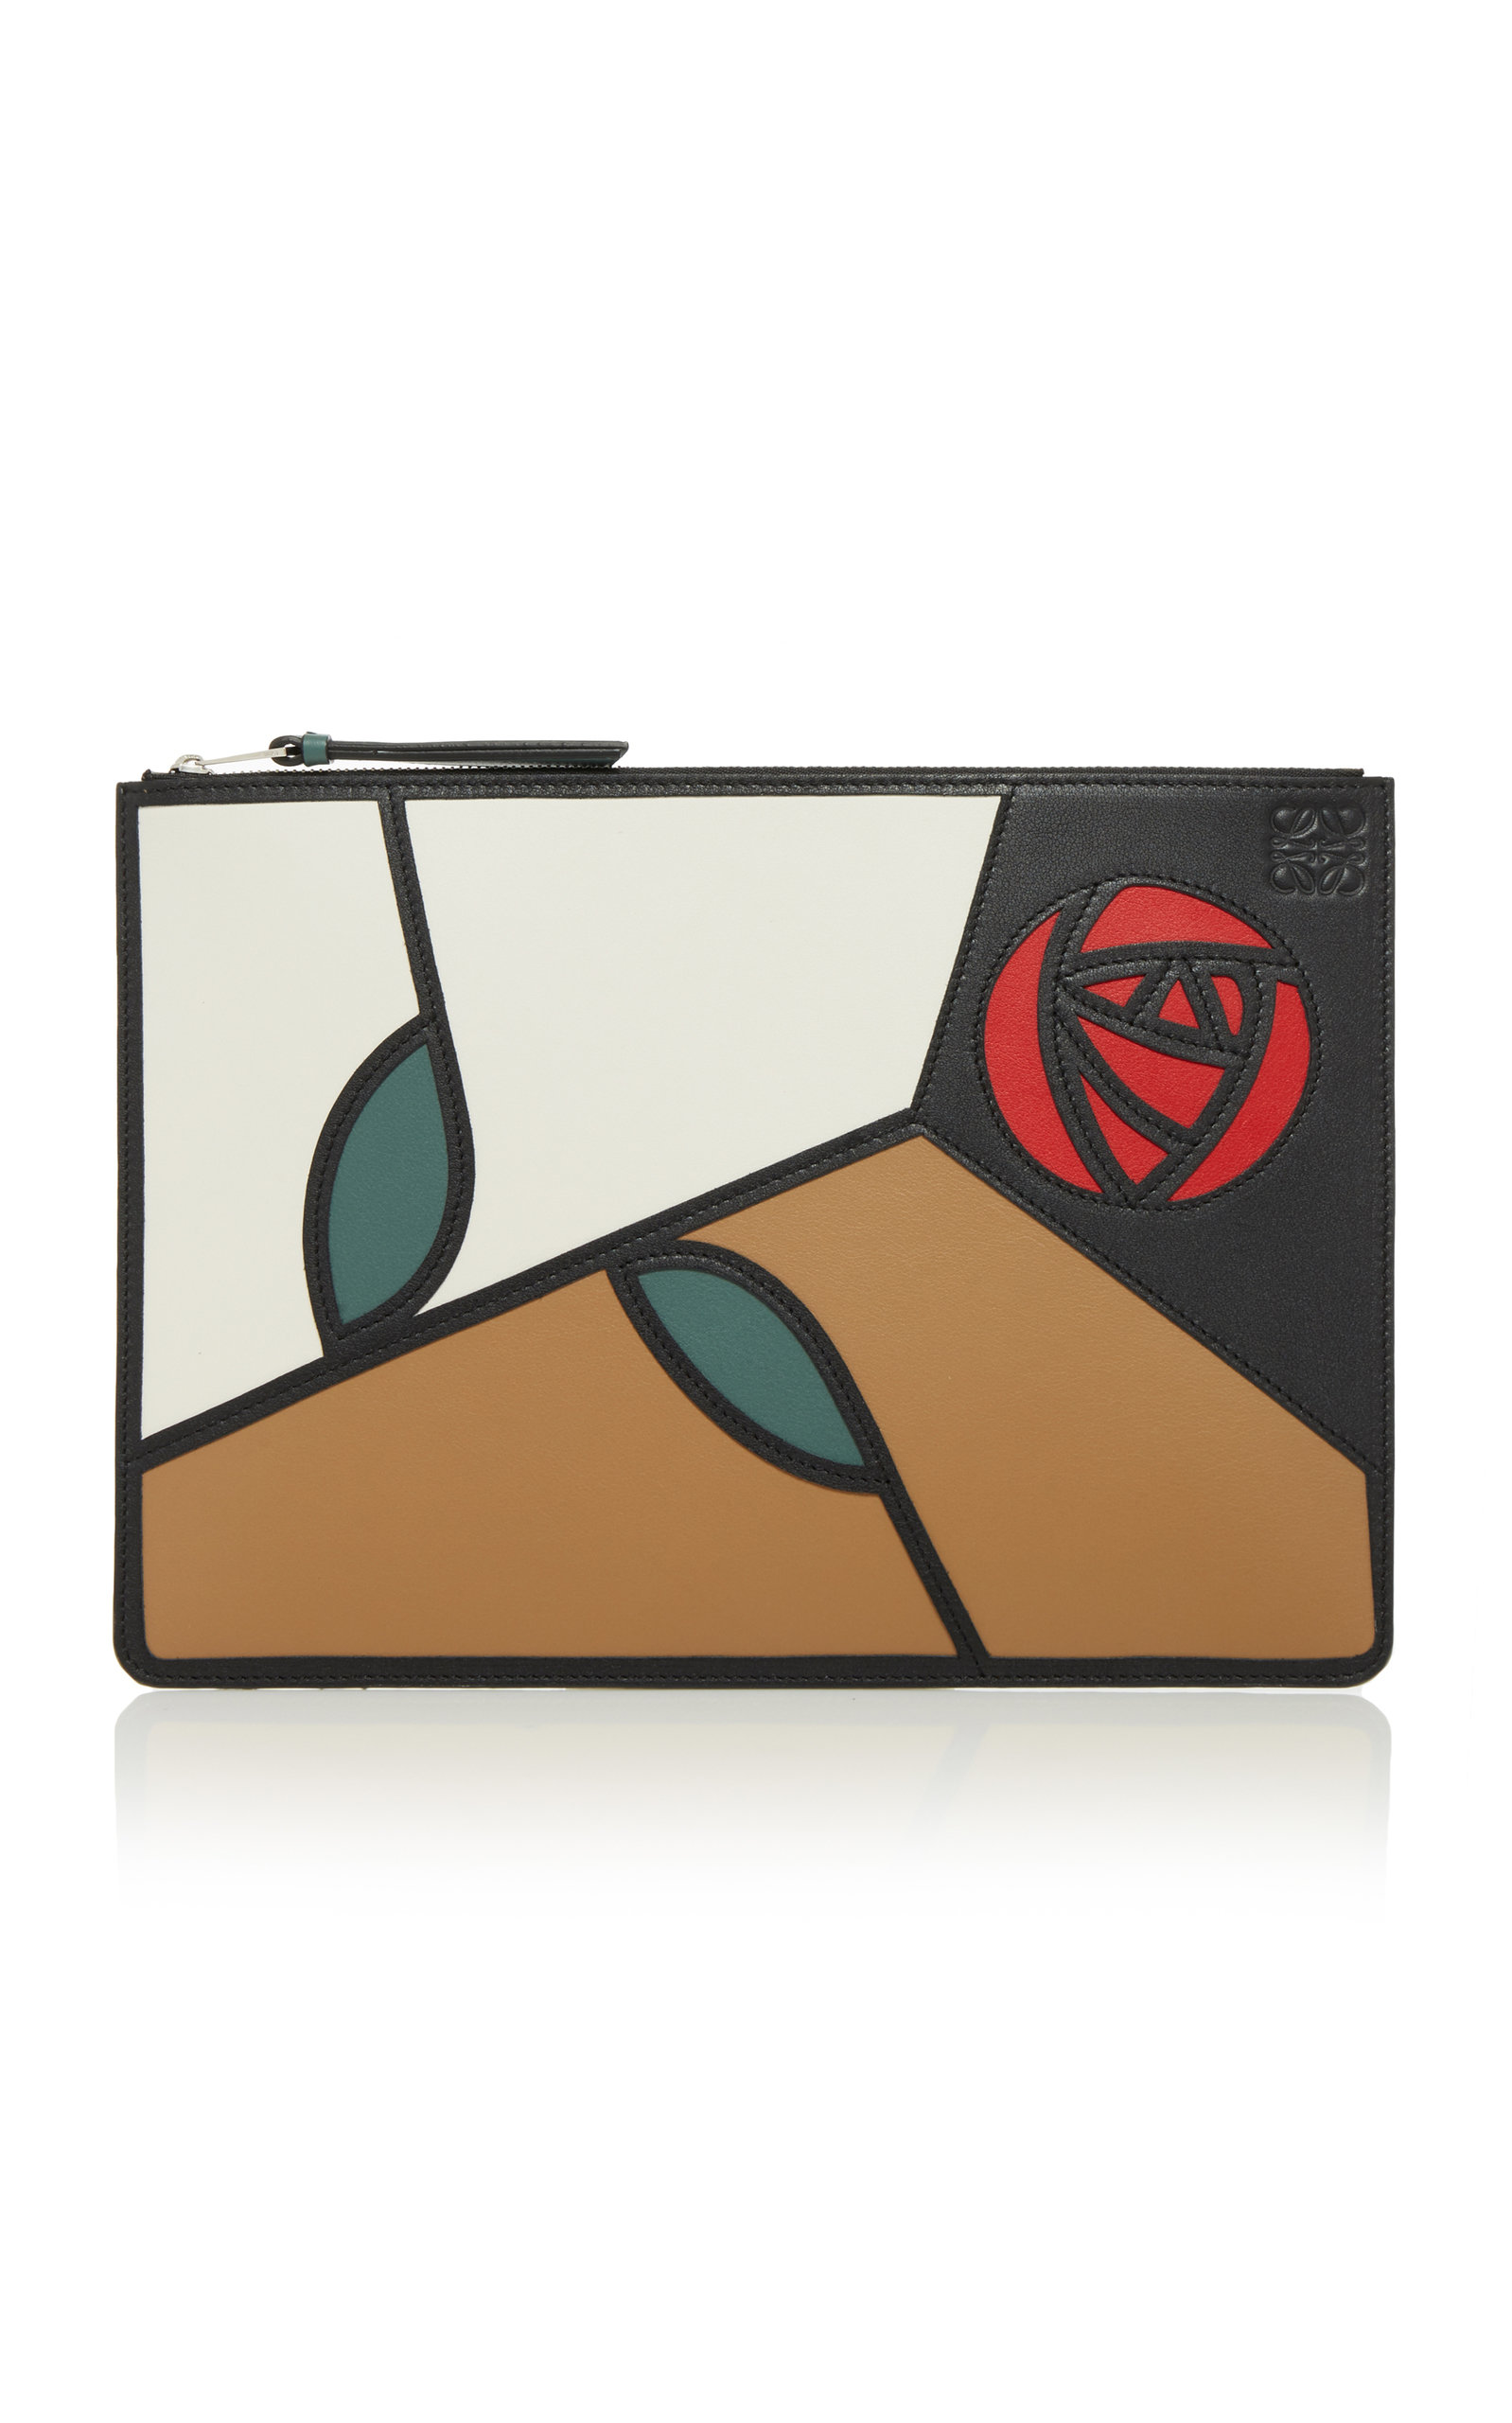 LOEWE MEDIUM PRINTED LEATHER POUCH